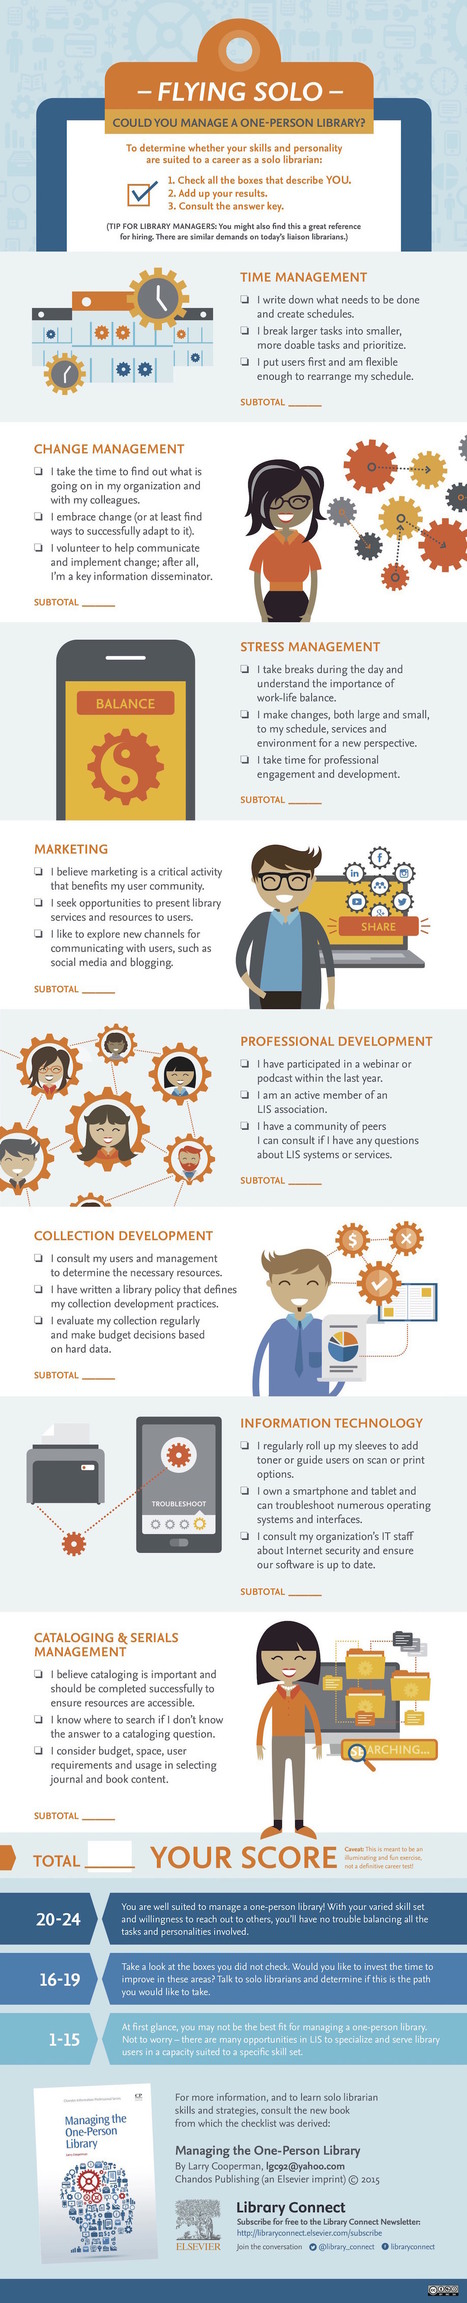 Managing a one-person library #infographic | We are Teacher-Librarians | Scoop.it